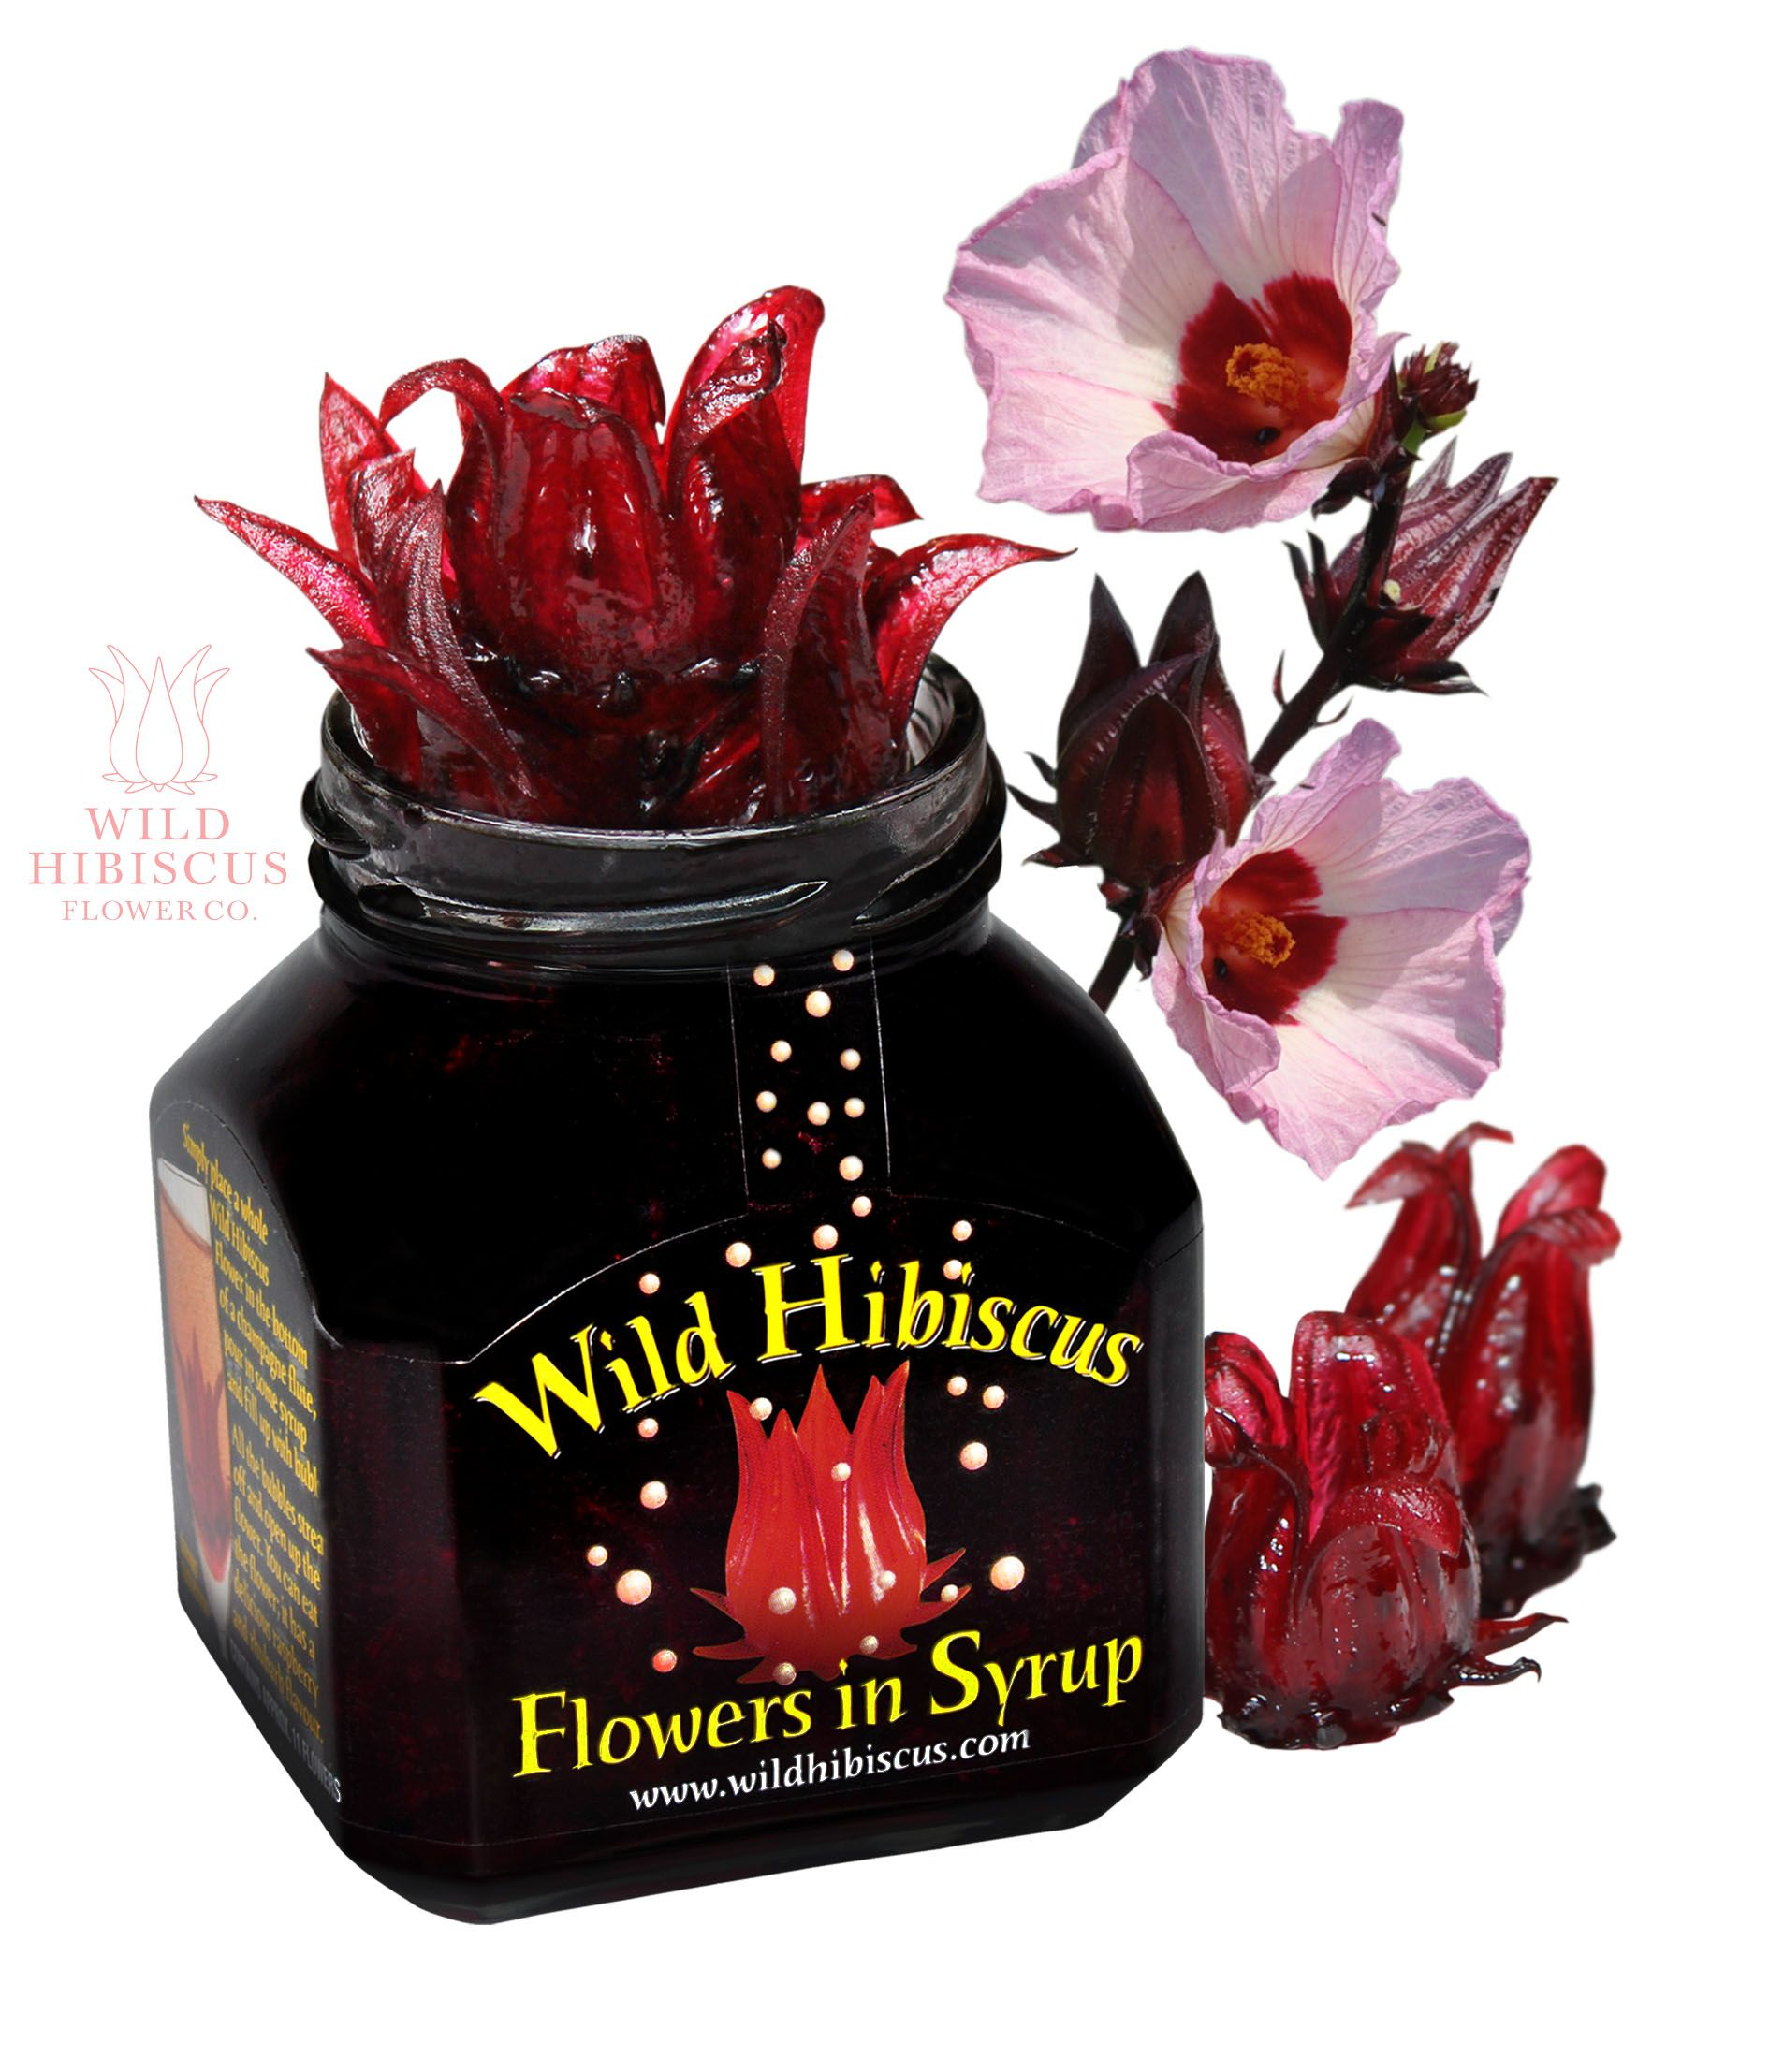 Wild hibiscus flower co edible giveaway hibiscus flowers wild hibiscus flower co edible giveaway hello glow izmirmasajfo